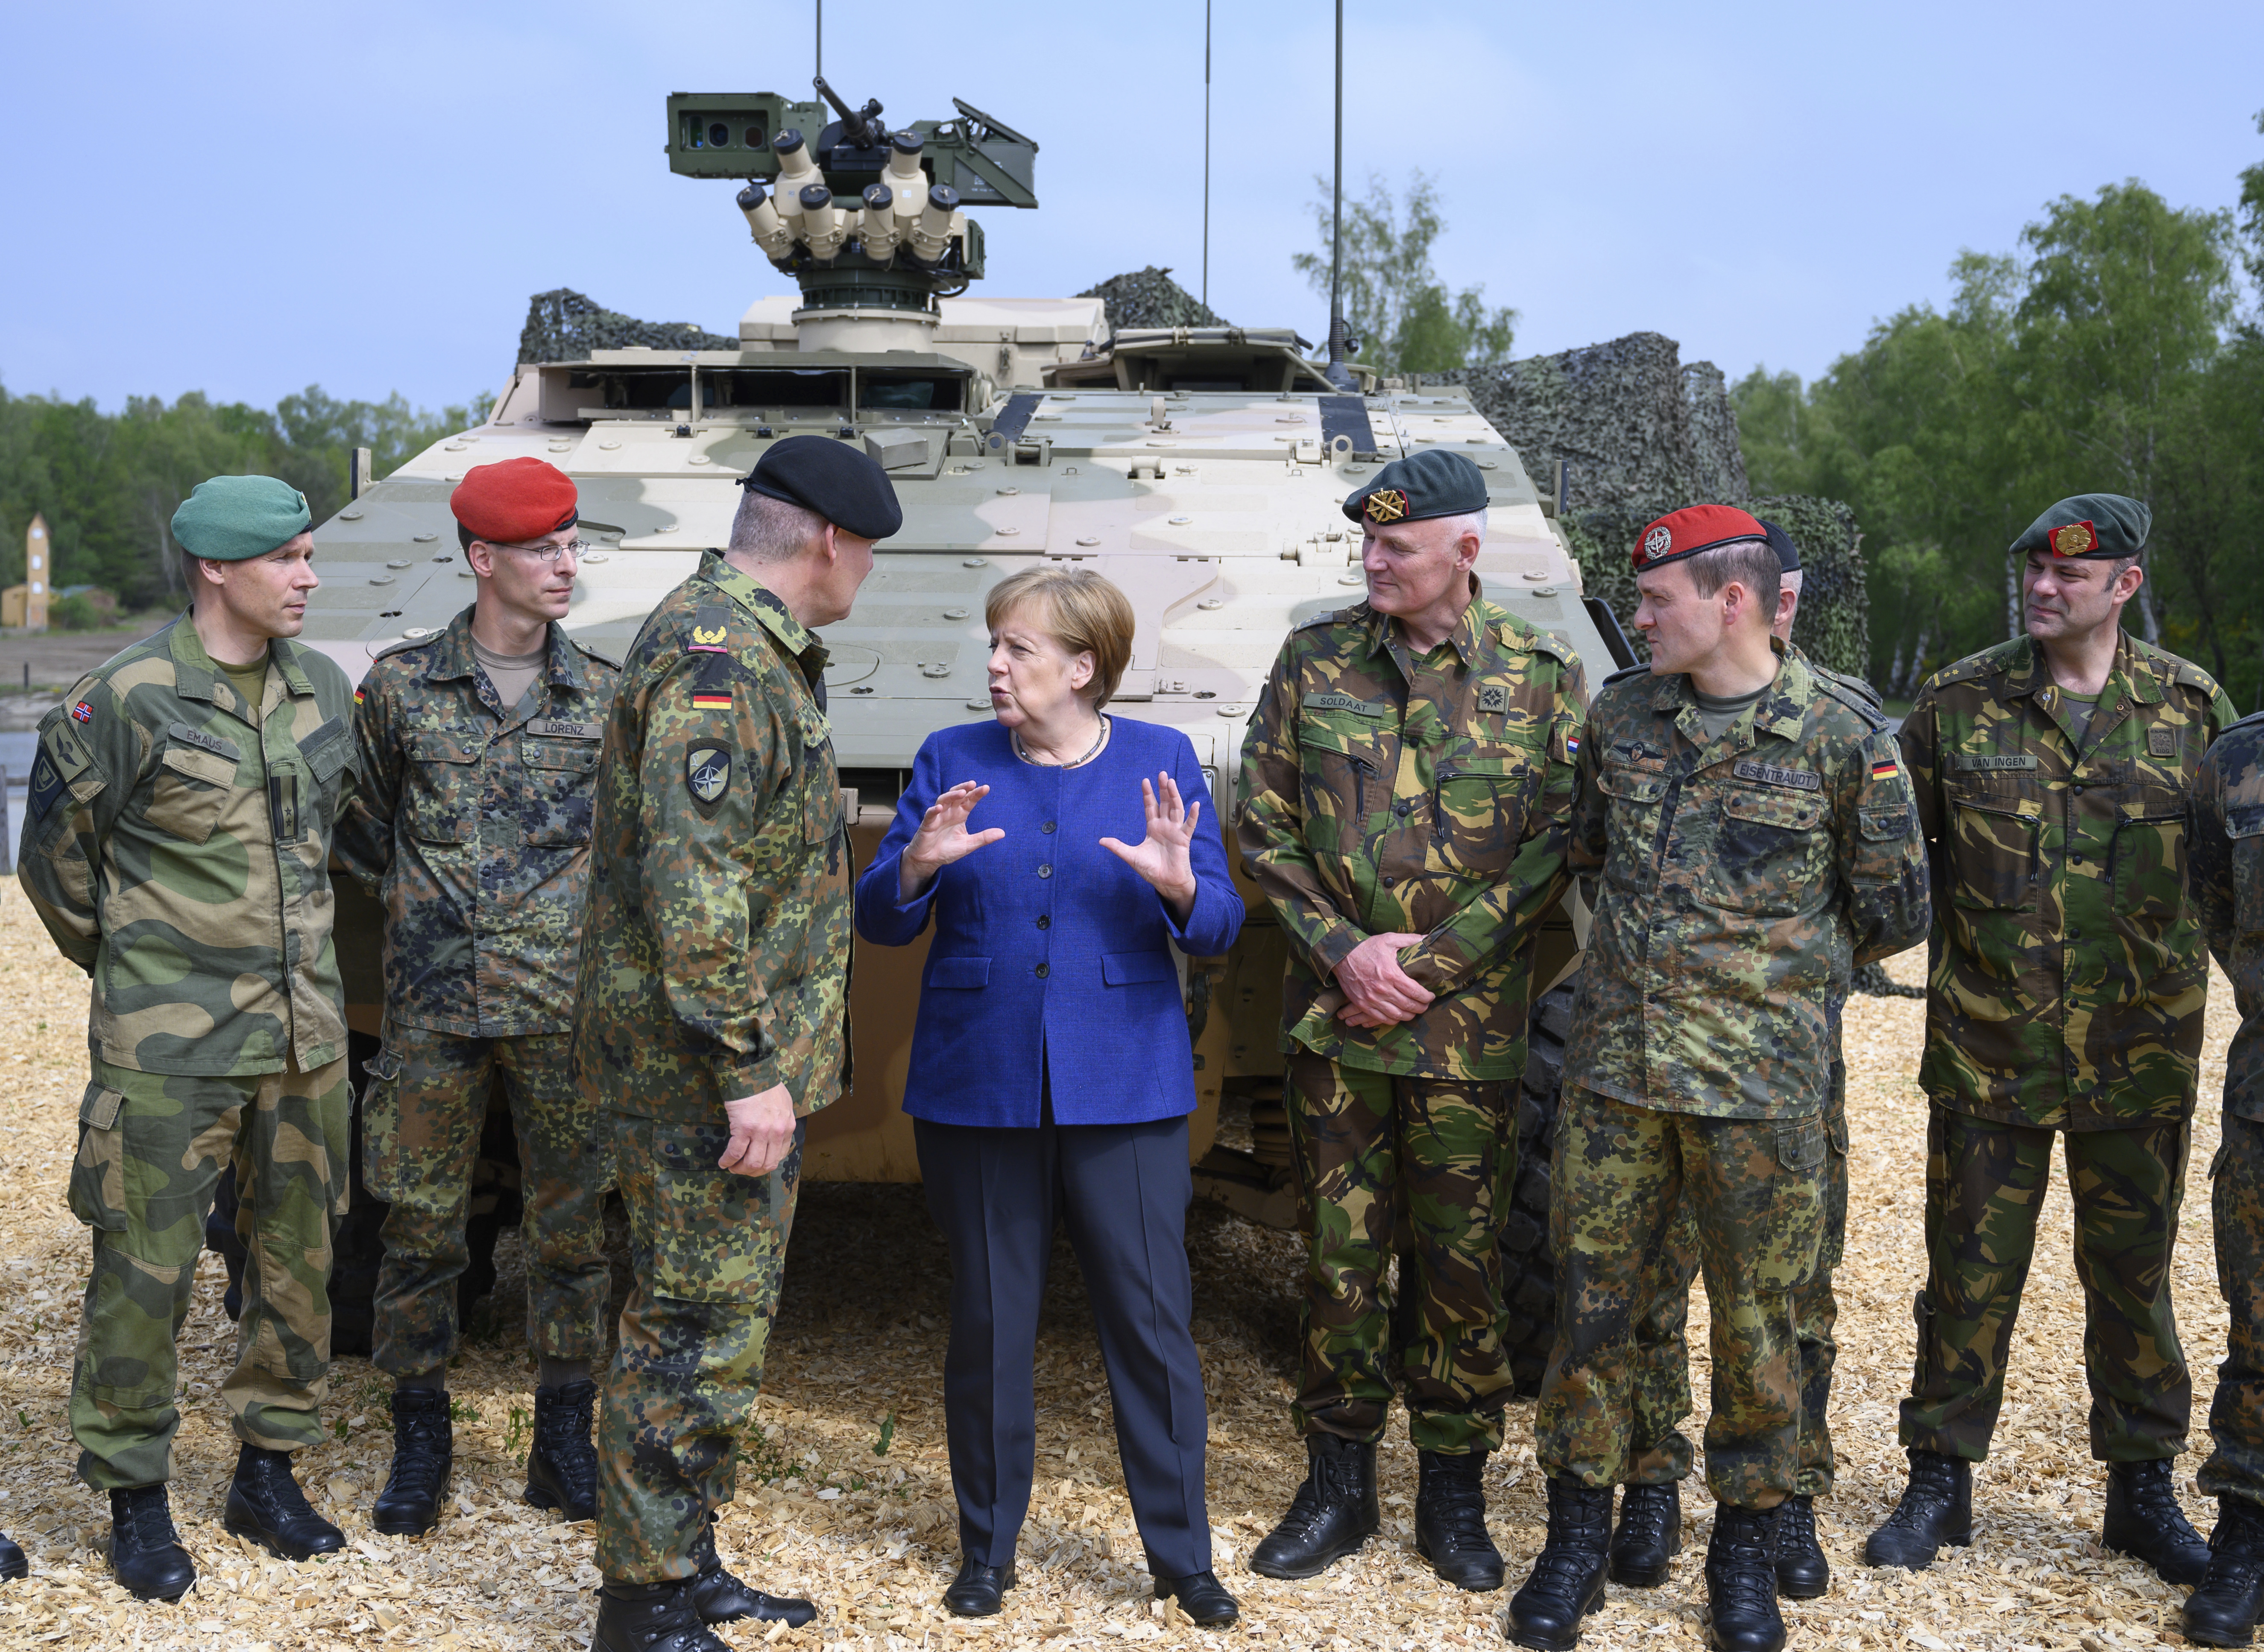 Chancellor Angela Merkel  comes to a demonstration of the Very High Readiness Joint Task Force (VJTF) and talks to VJTF commanders and leaders on May 20, 2019 in Munster, Germany. In 2019, Germany will be responsible for the Nato rapid reaction force.